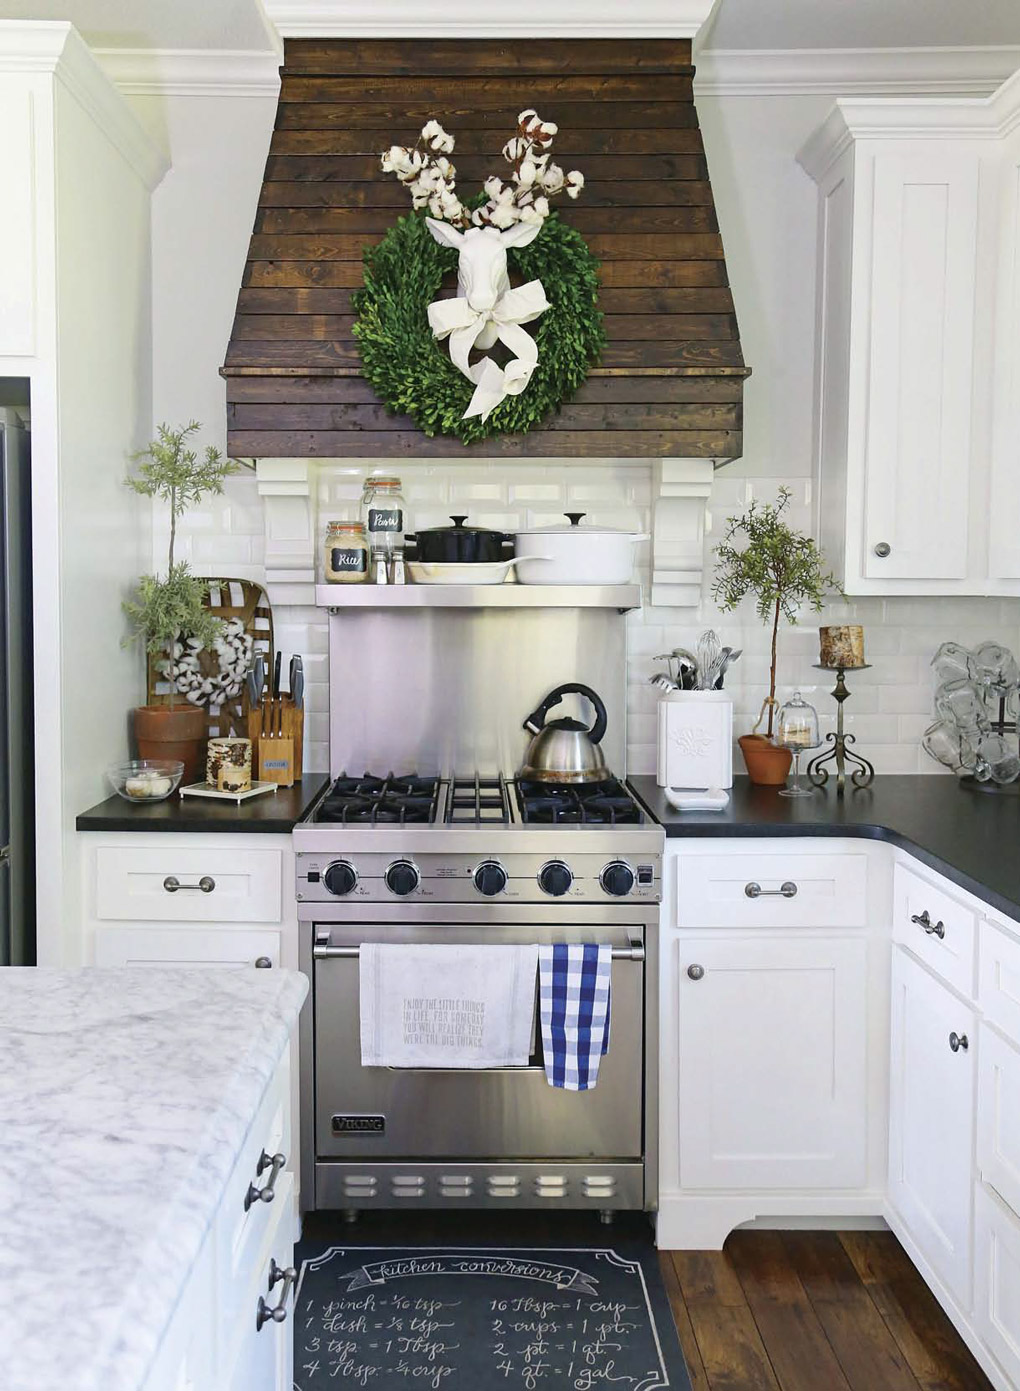 Kitchen with white cabinets and black countertops showing off a custom range hood with slatted wood and a bright green wreath with a white deer accent in the middle.